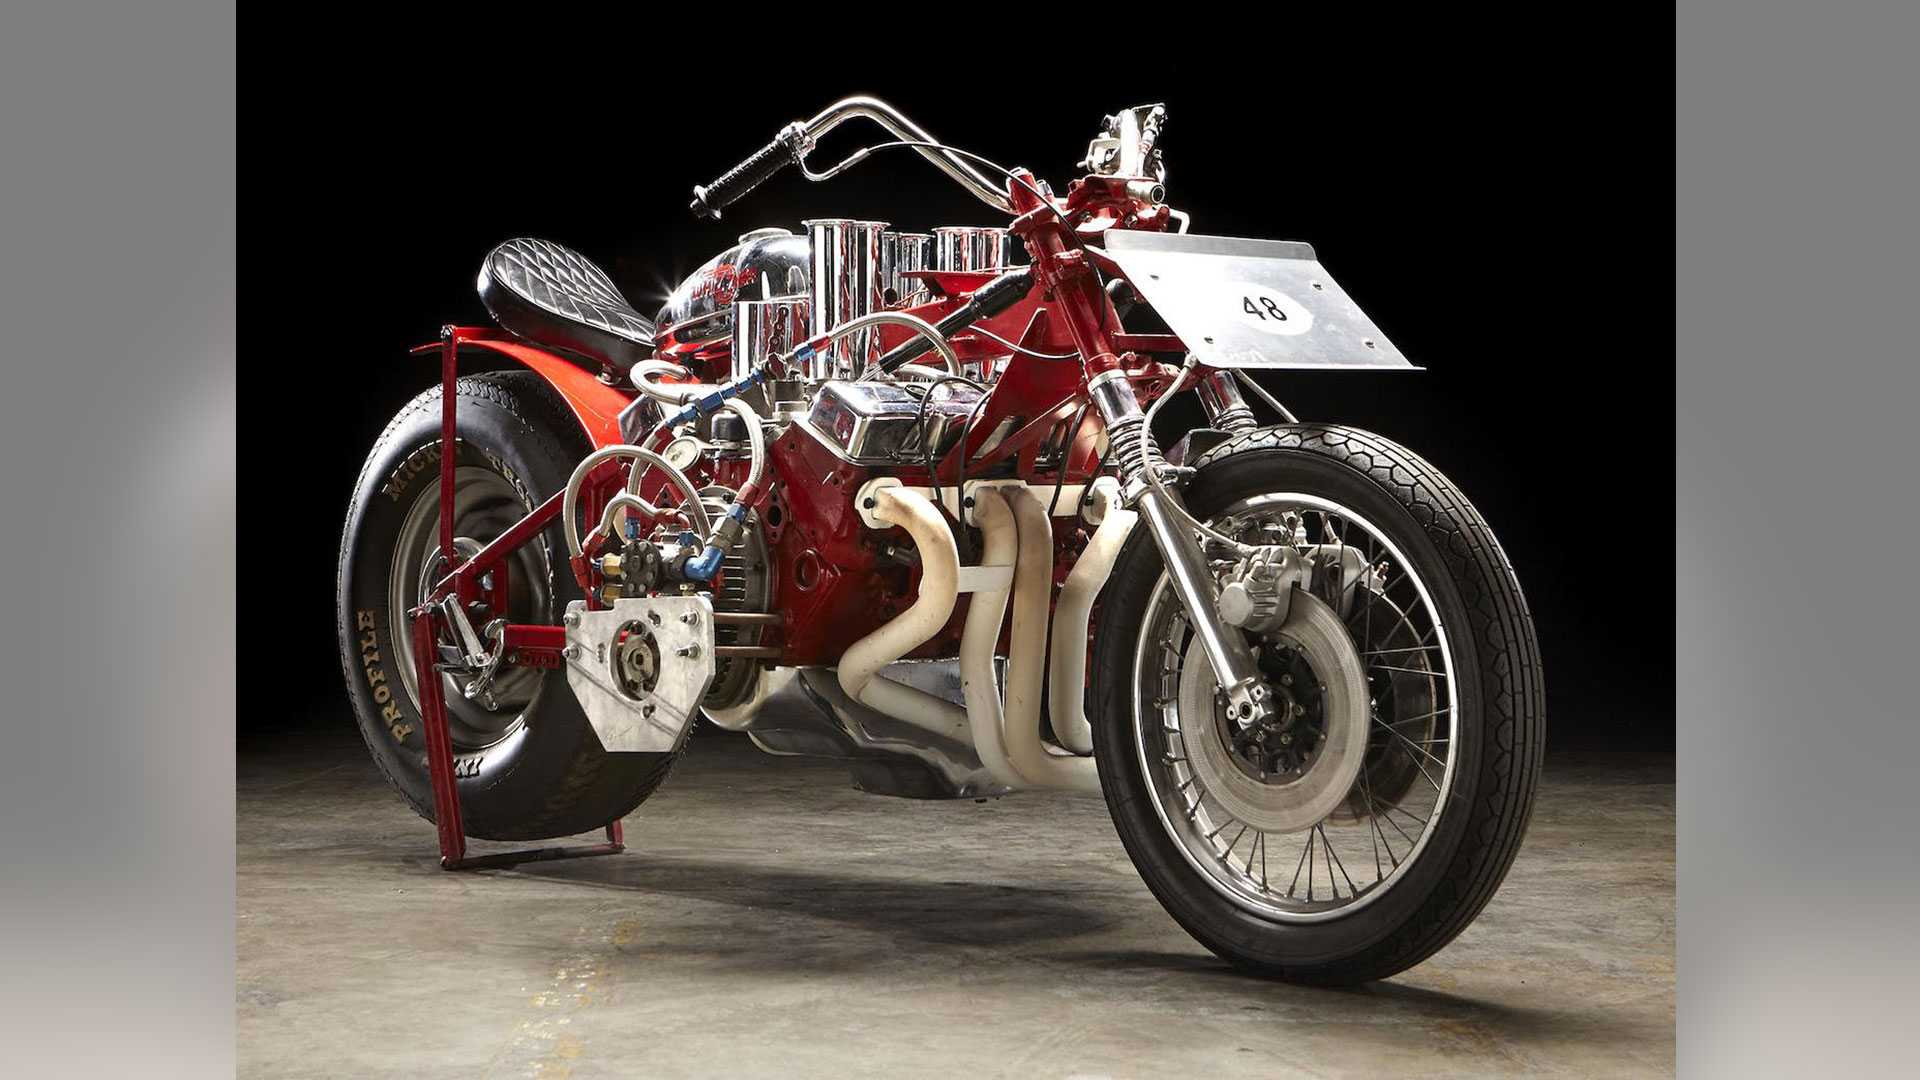 The Widowmakers: Top Ten Most Frightening Motorcycles To Ride